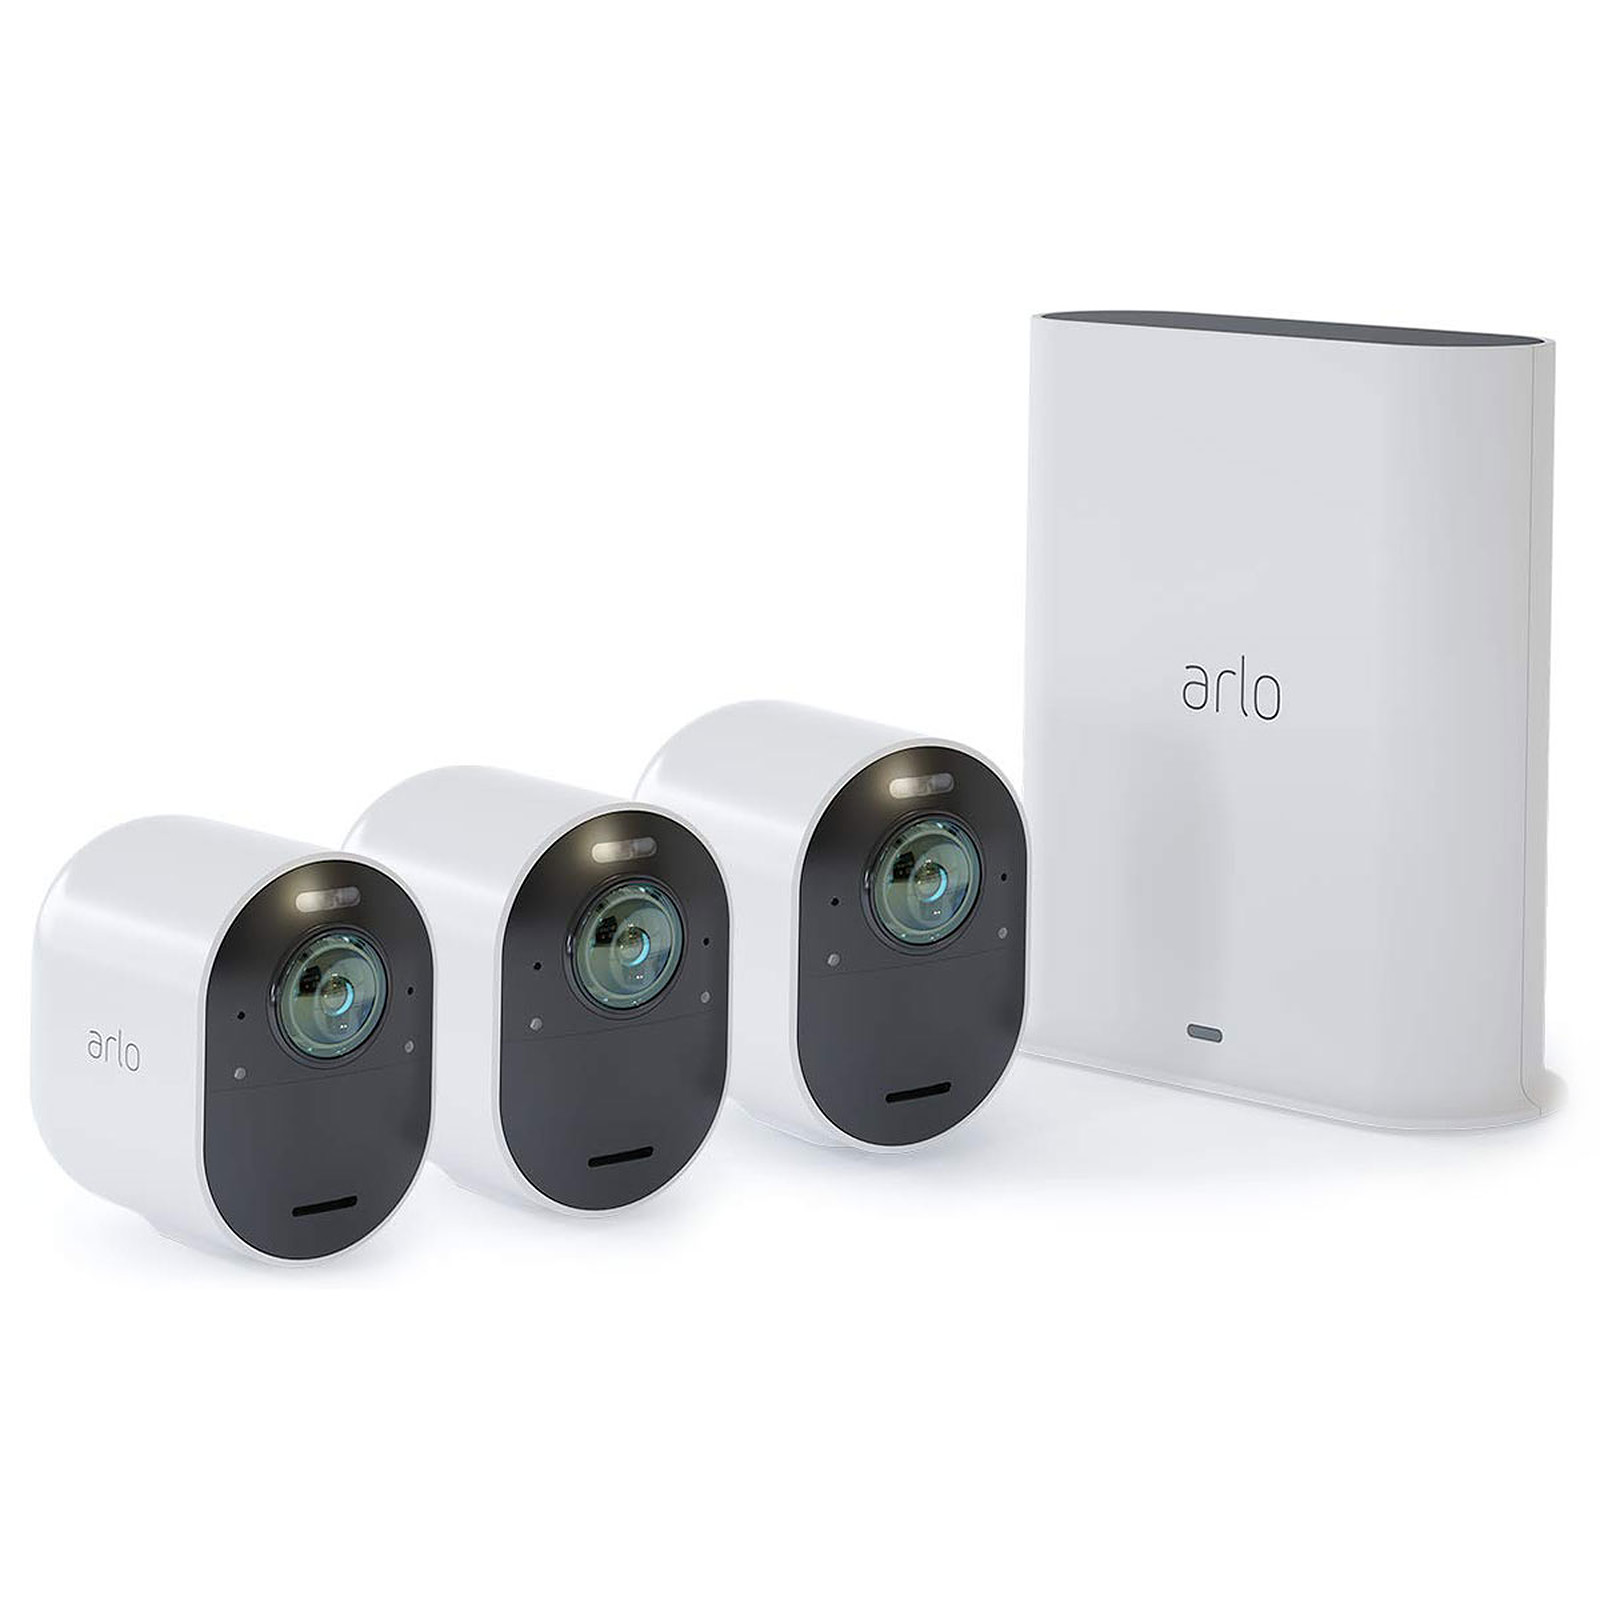 Camera Surveillance Exterieur Sans Fil Autonome Amazon Arlo Ultra Pack 3 Smart Caméra